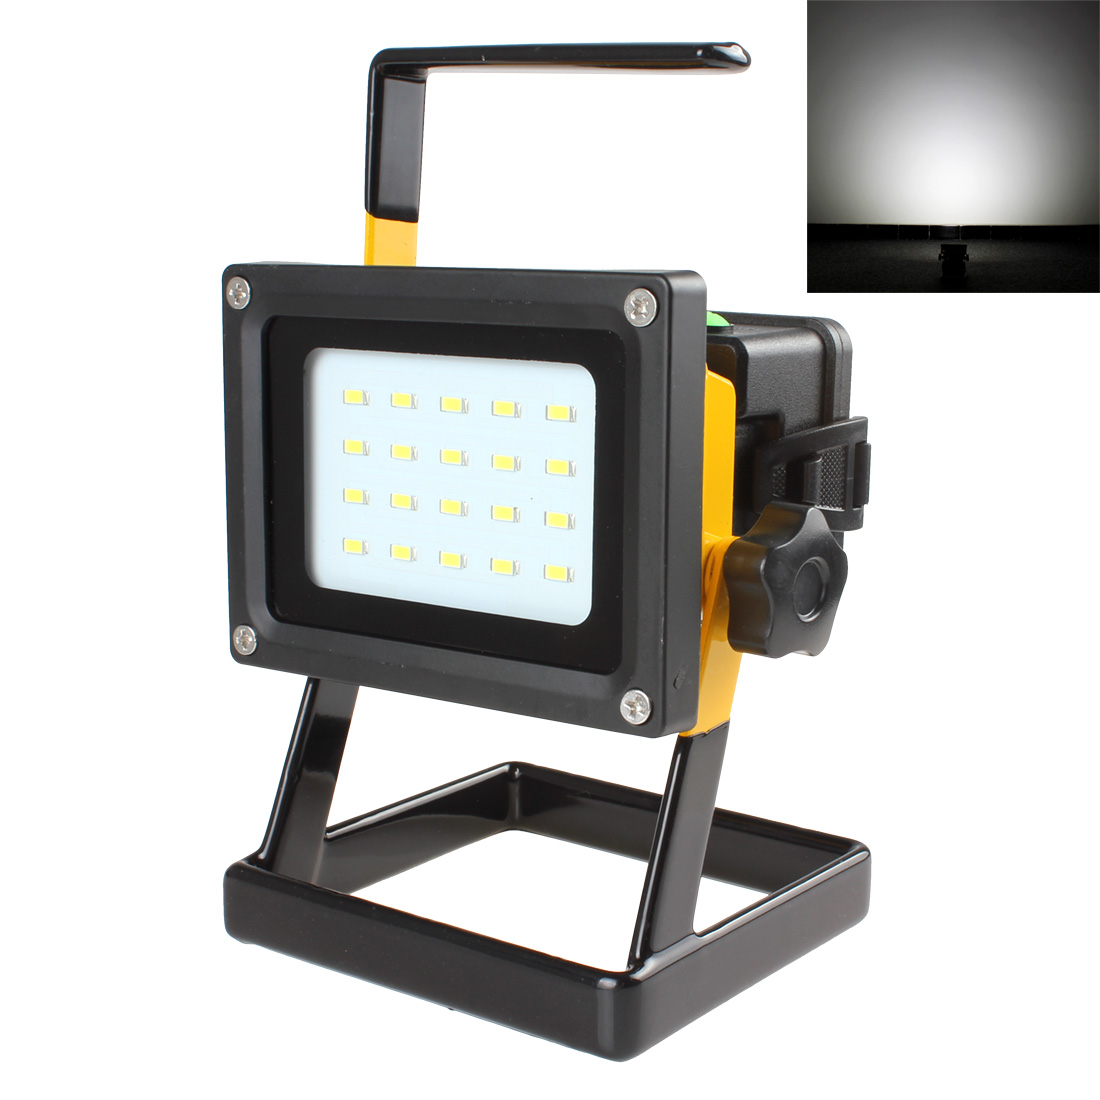 LED Floodlight Waterproof 20 SMD LEDs 600 LM 3-Mode Rechargeable Spotlight Camping Lamp with Handle + AC Adapter